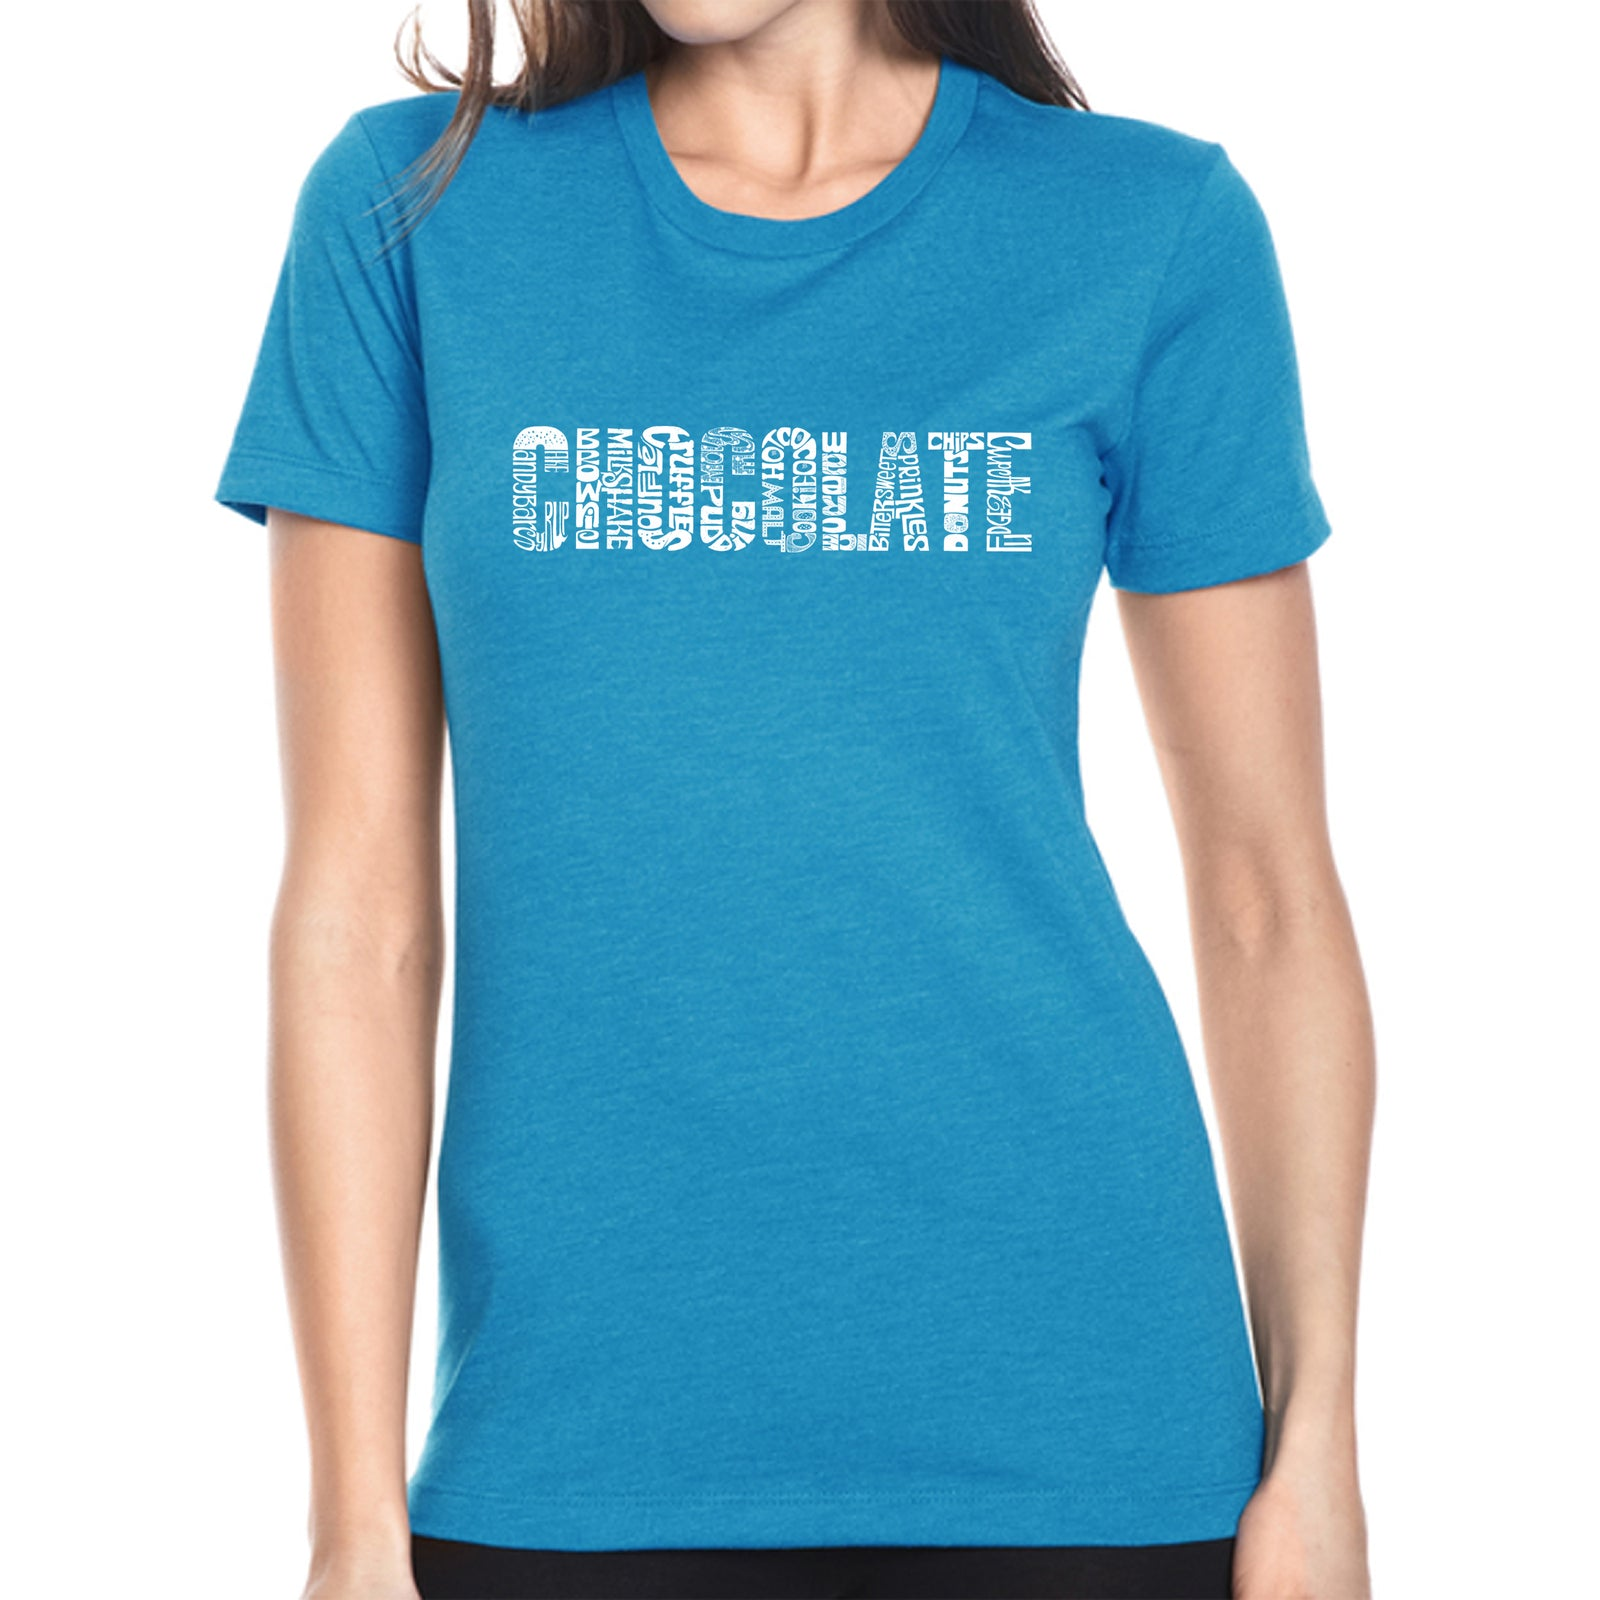 Women's Premium Blend Word Art T-shirt - Different foods made with chocolate